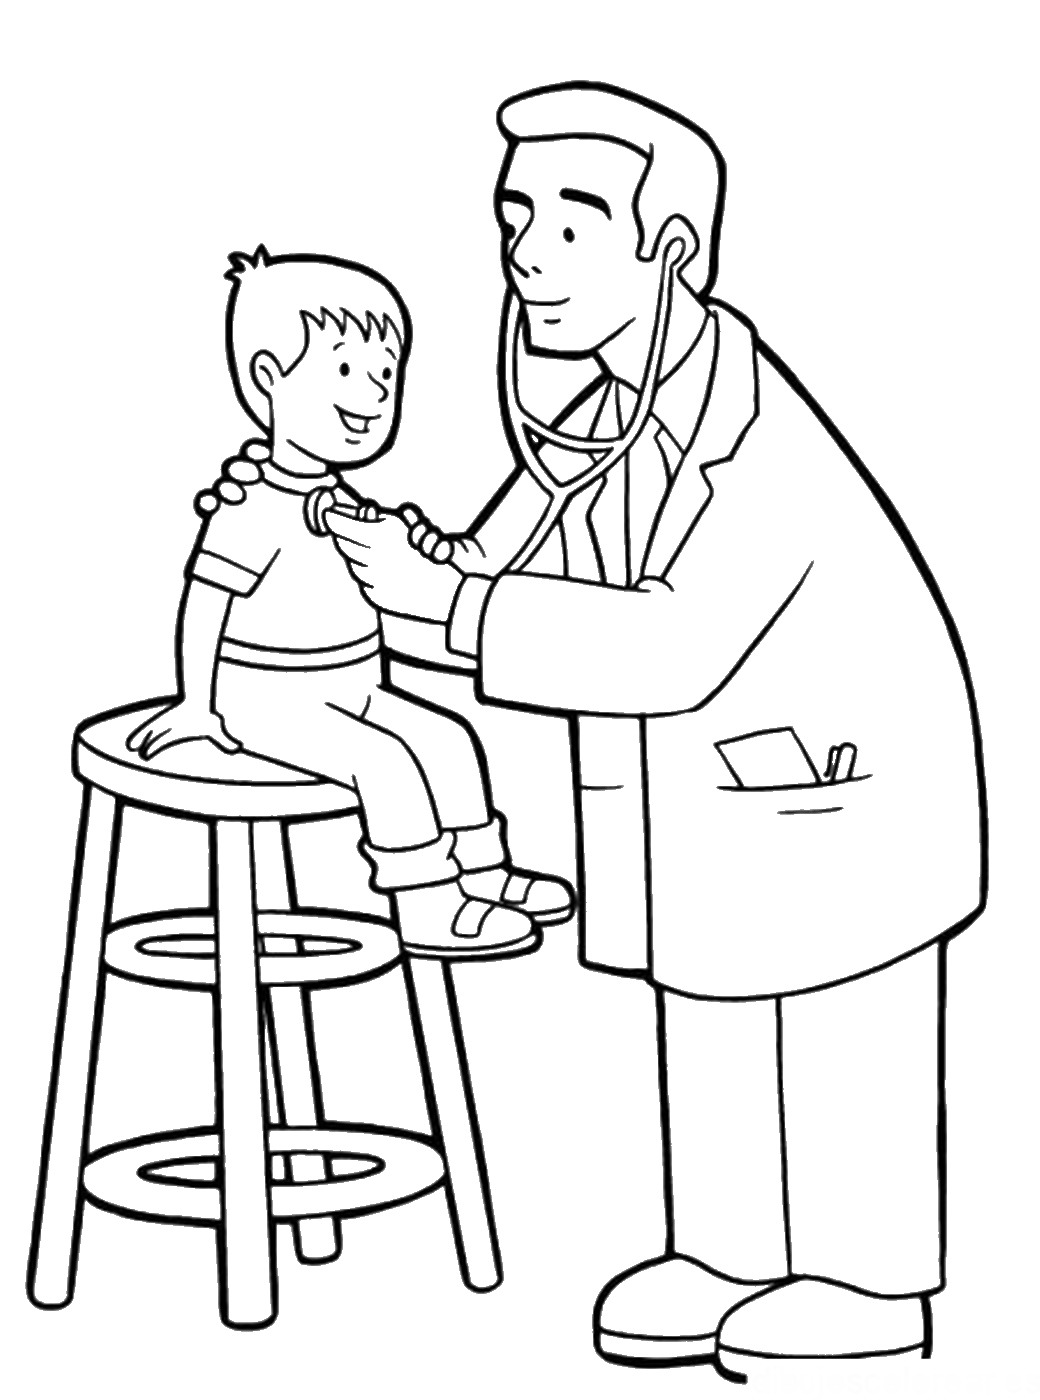 Doctors Tools Coloring Page Download Free Software